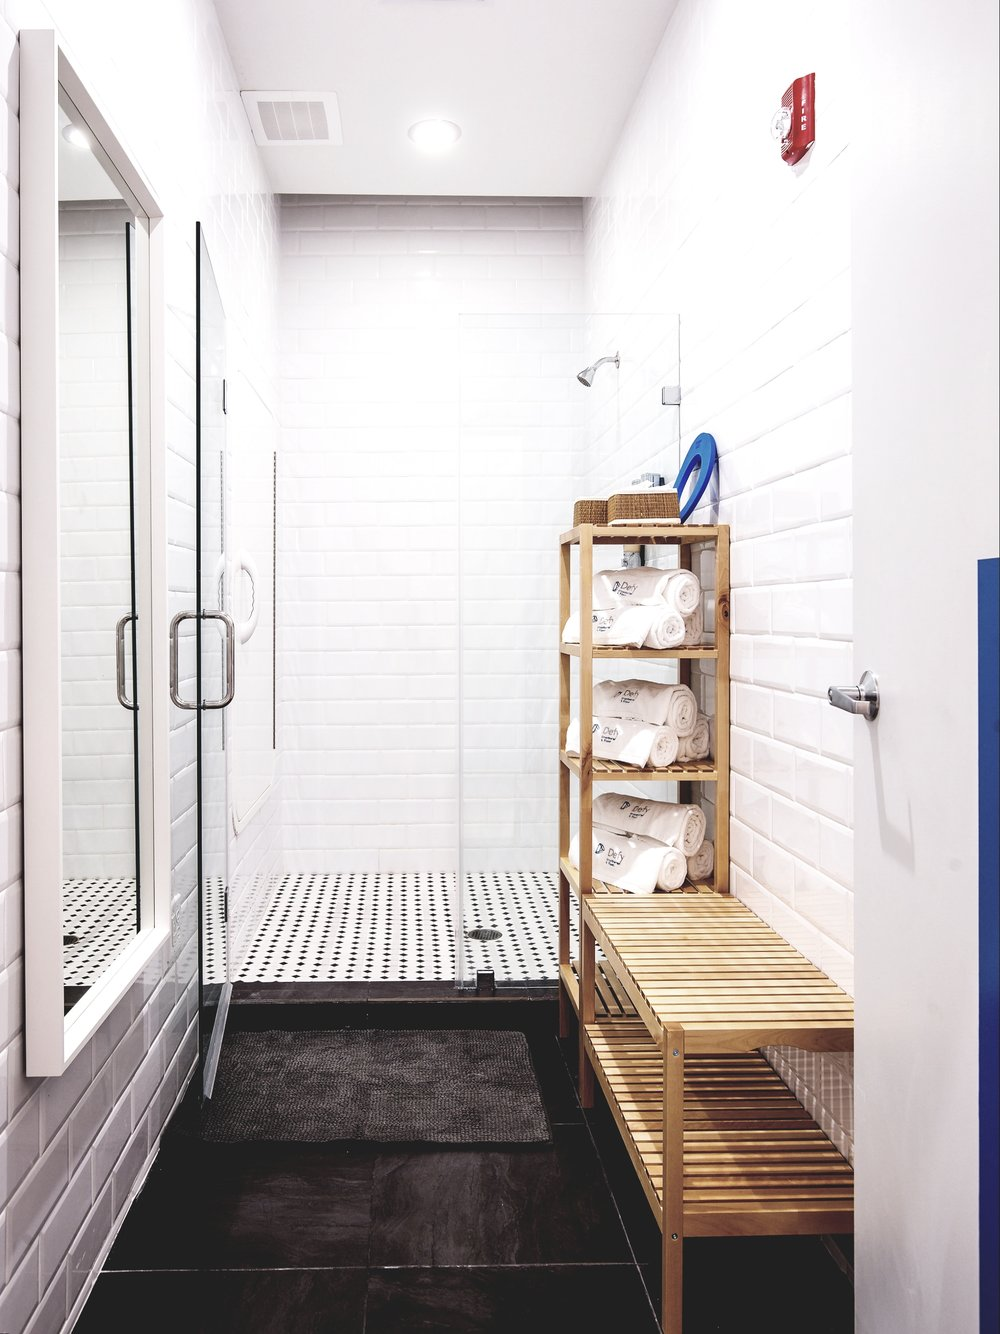 Your private en-suite float rooms!